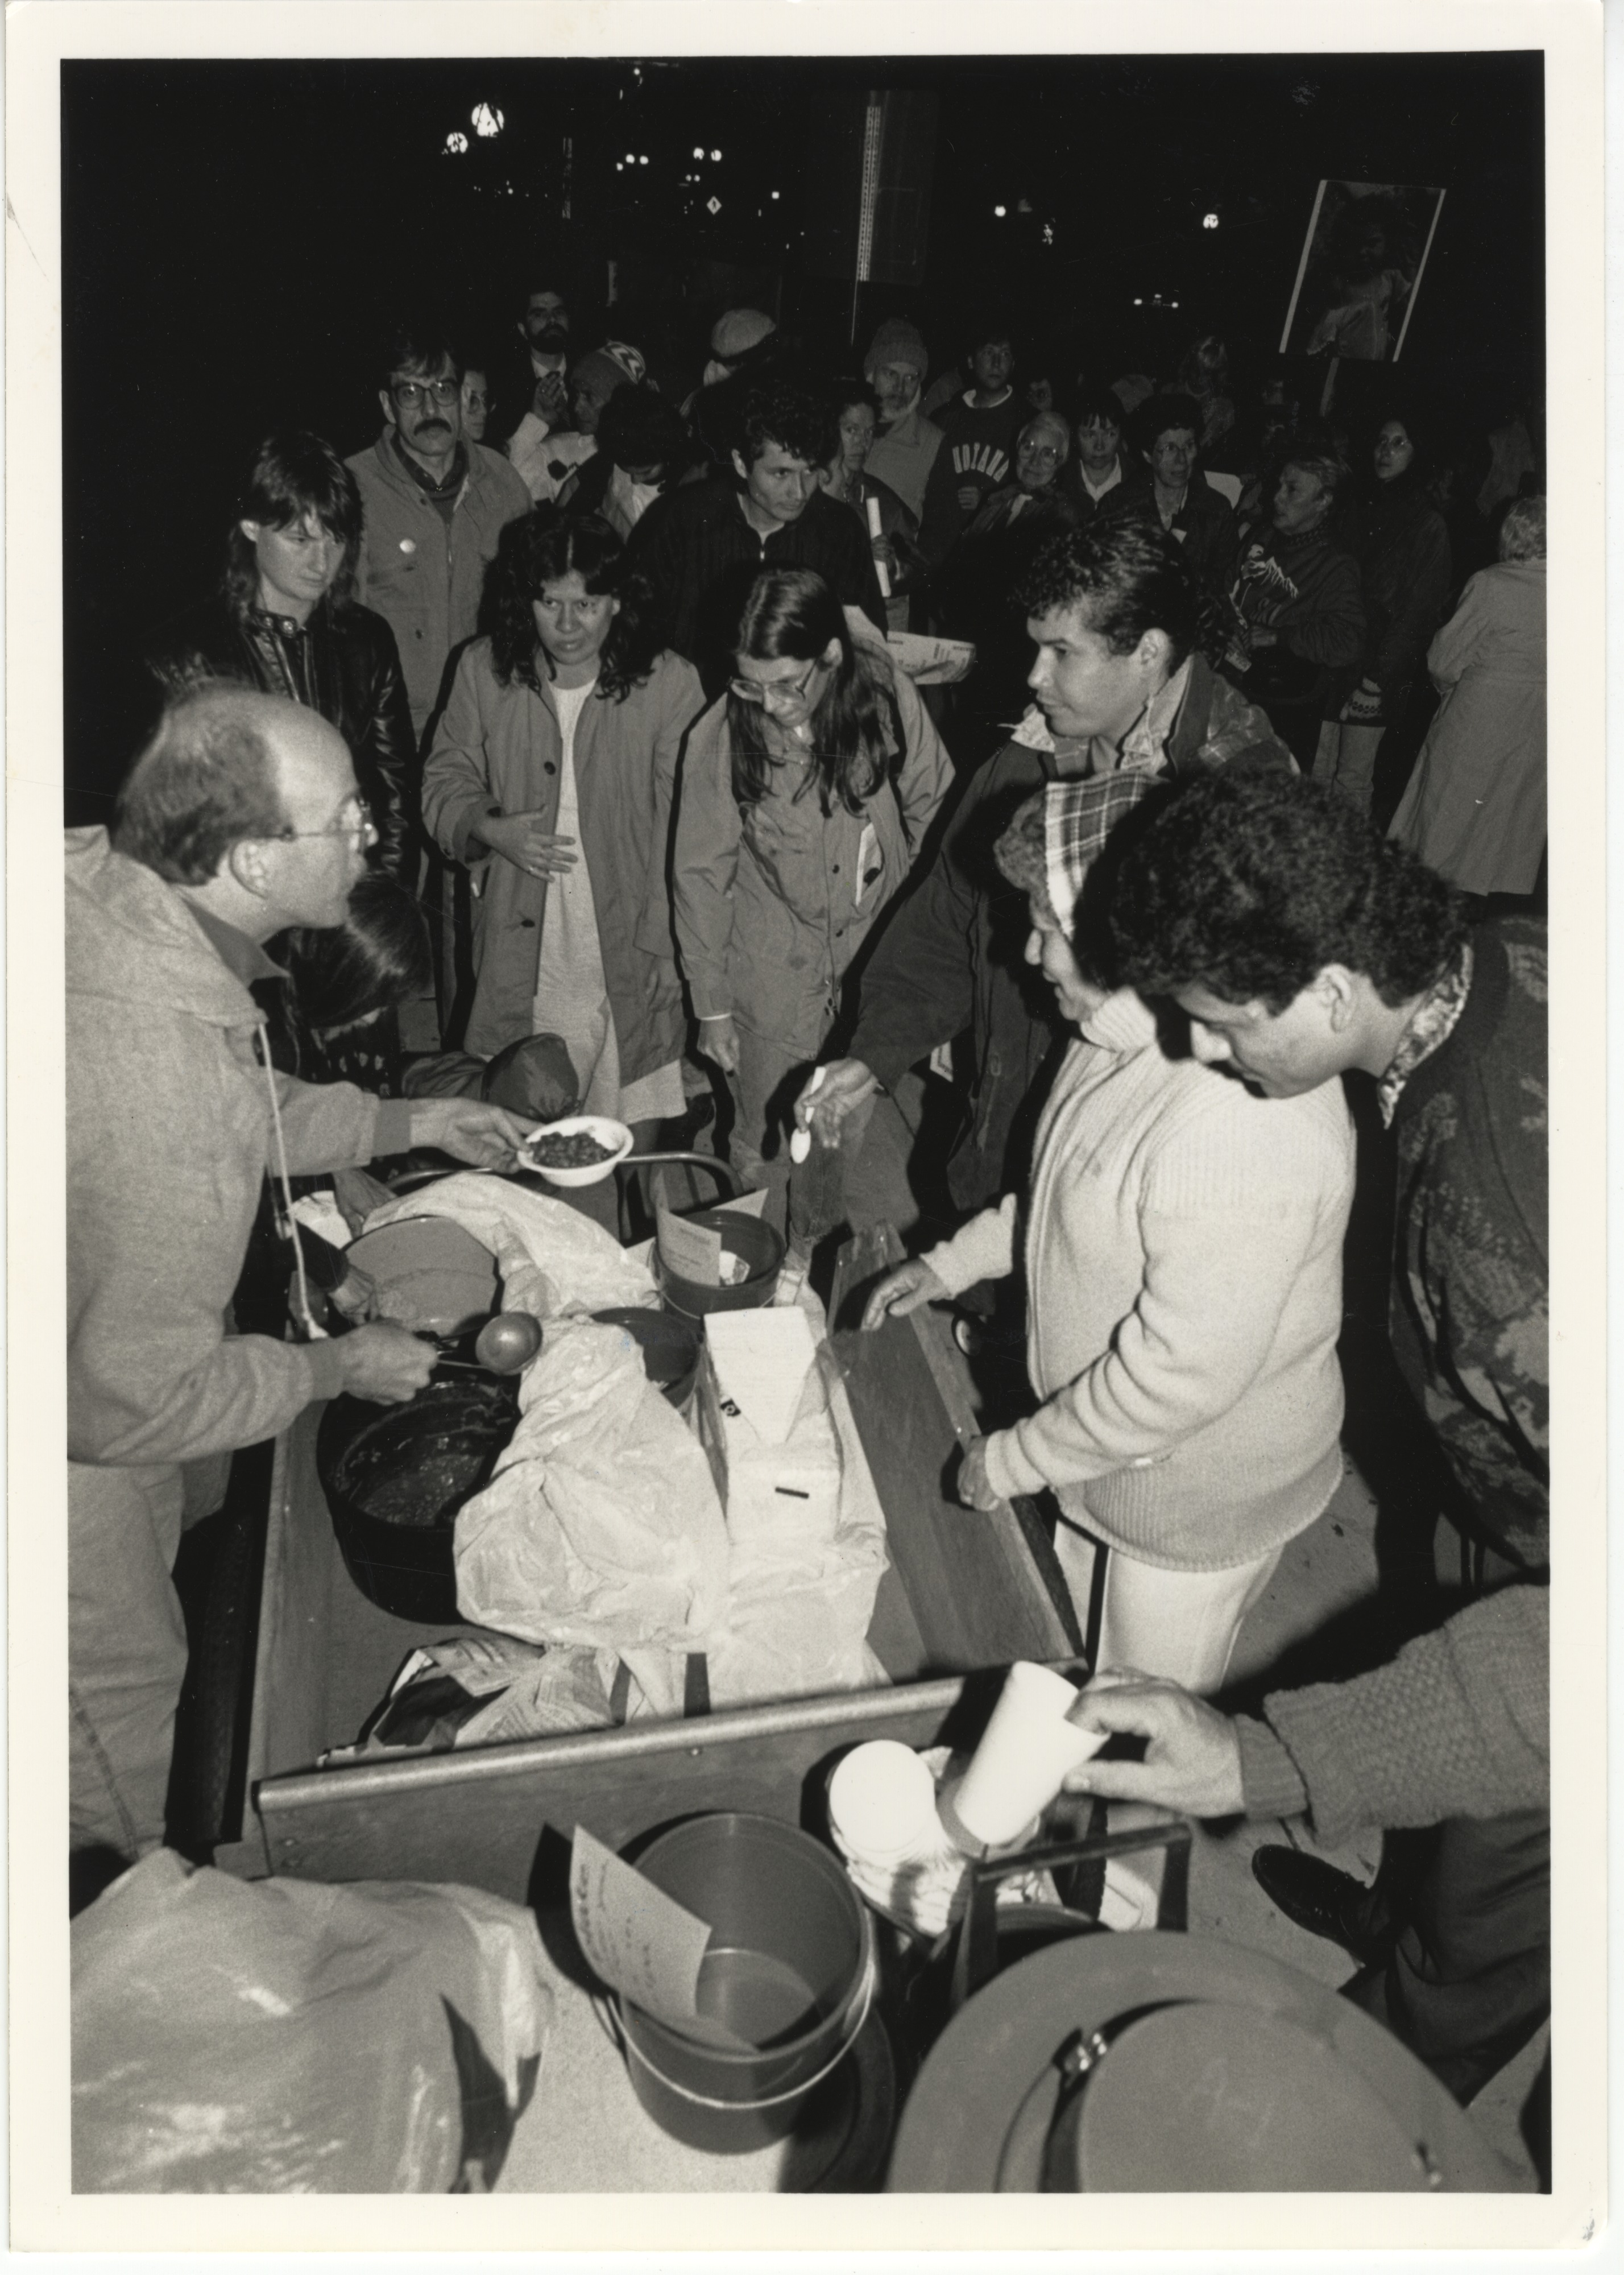 Interfaith Council for Peace and Justice: Kevin Curran Serves Rice & Beans, 1991 image